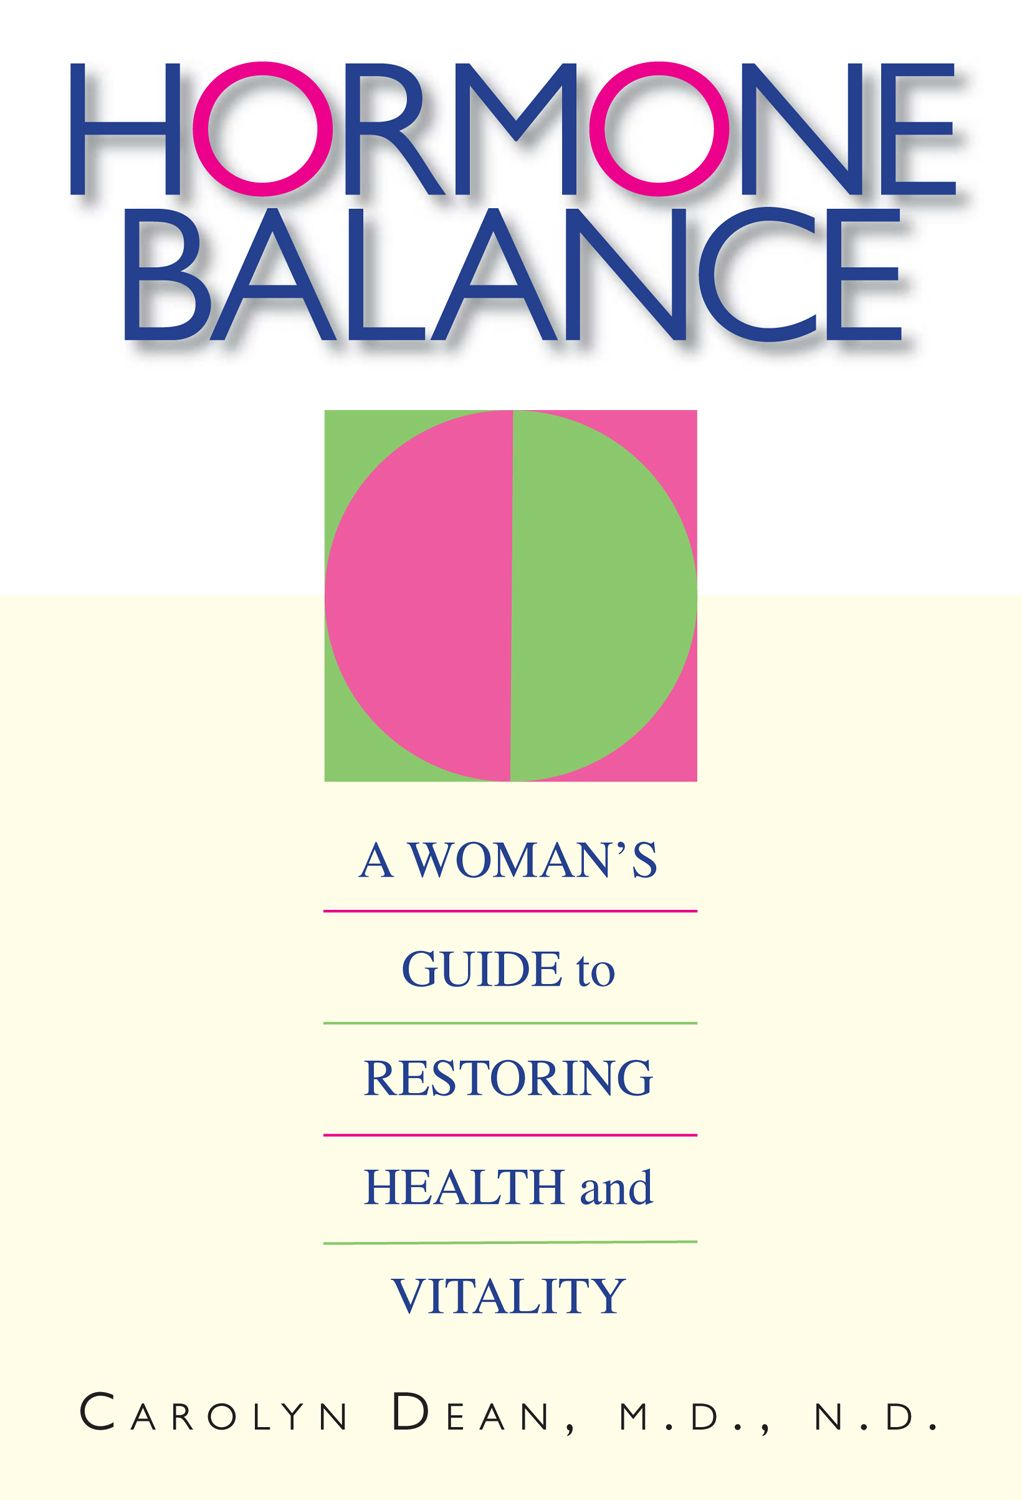 Hormone Balance: A Woman's Guide To Restoring Health And Vitality